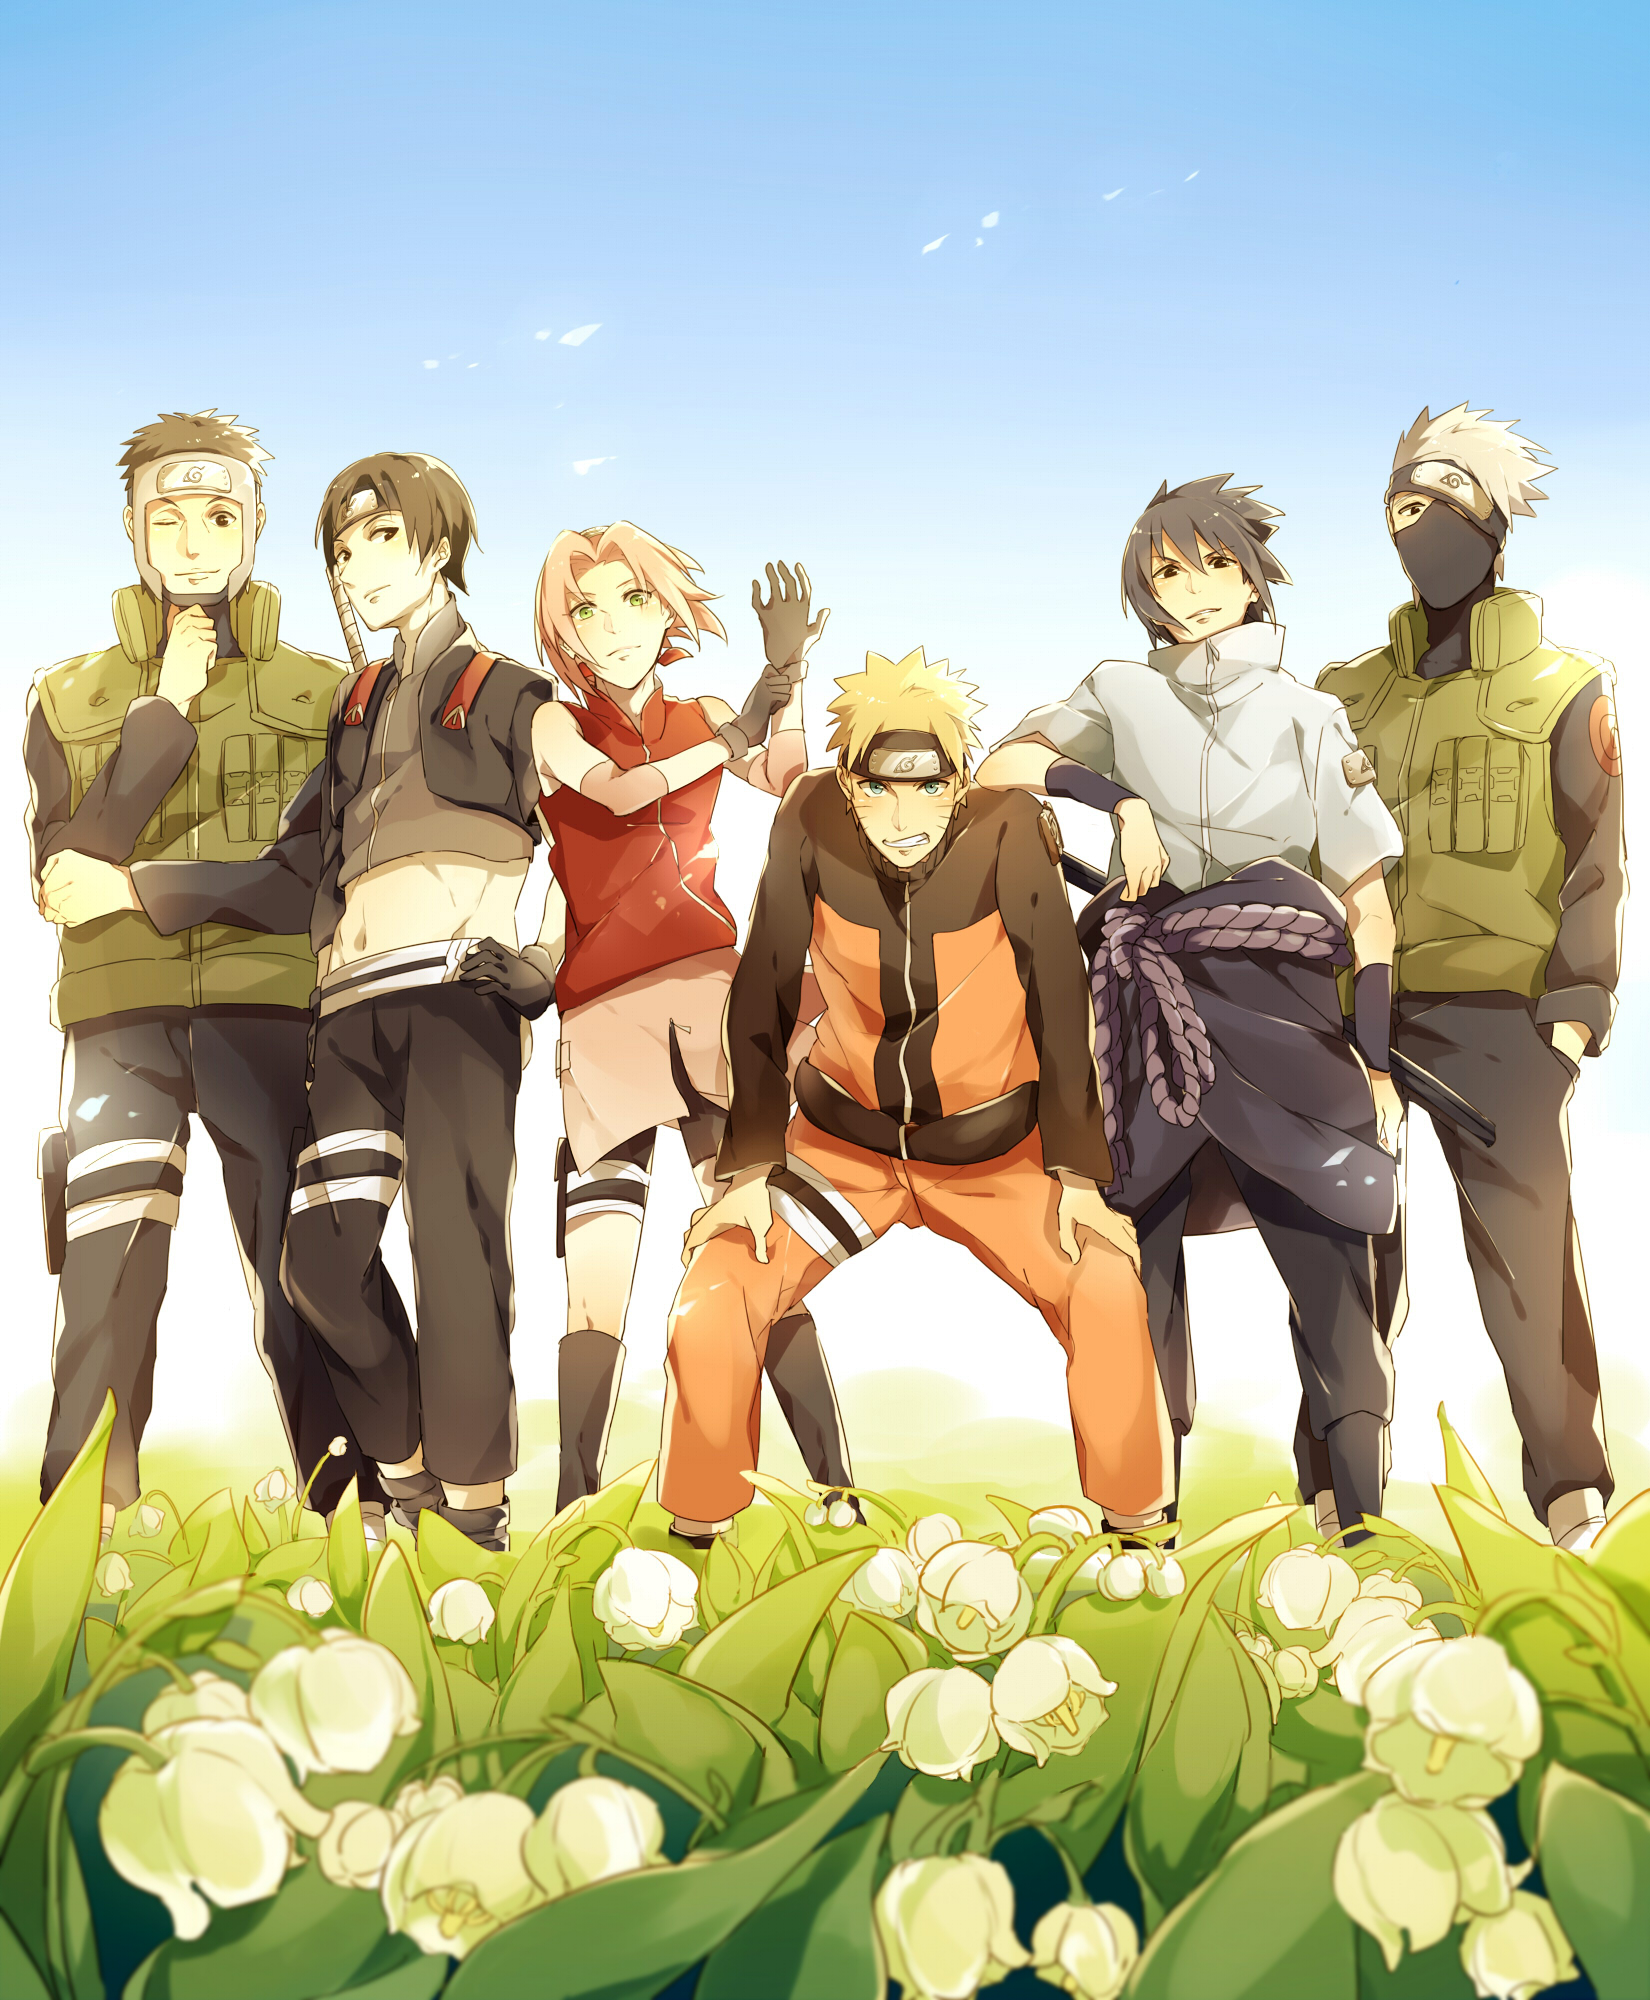 Naruto shippden zerochan anime image board team 7 download team 7 image voltagebd Image collections